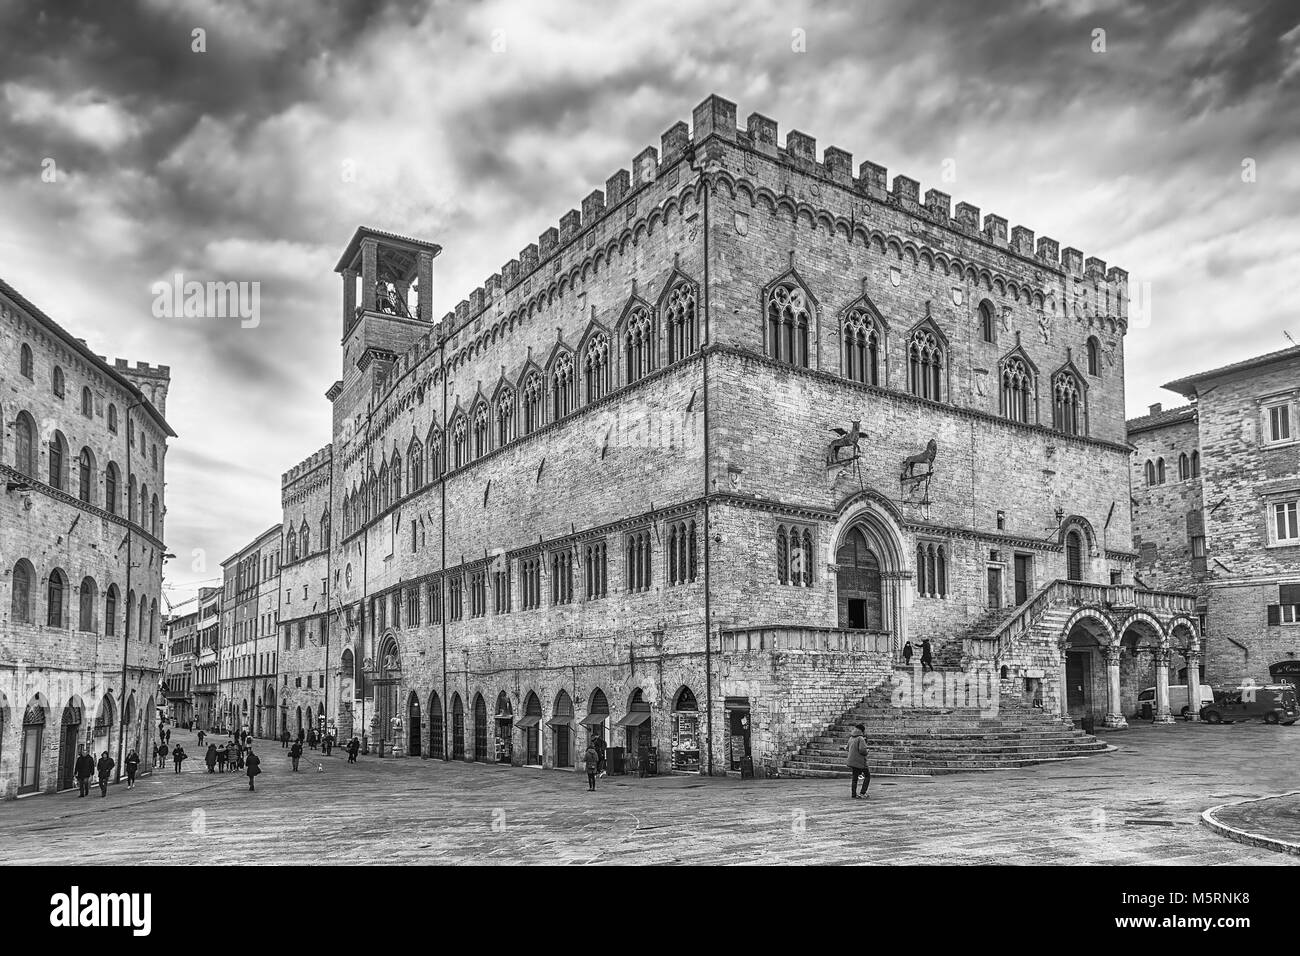 View of Palazzo dei Priori, historical building in the city centre of Perugia, Italy Stock Photo